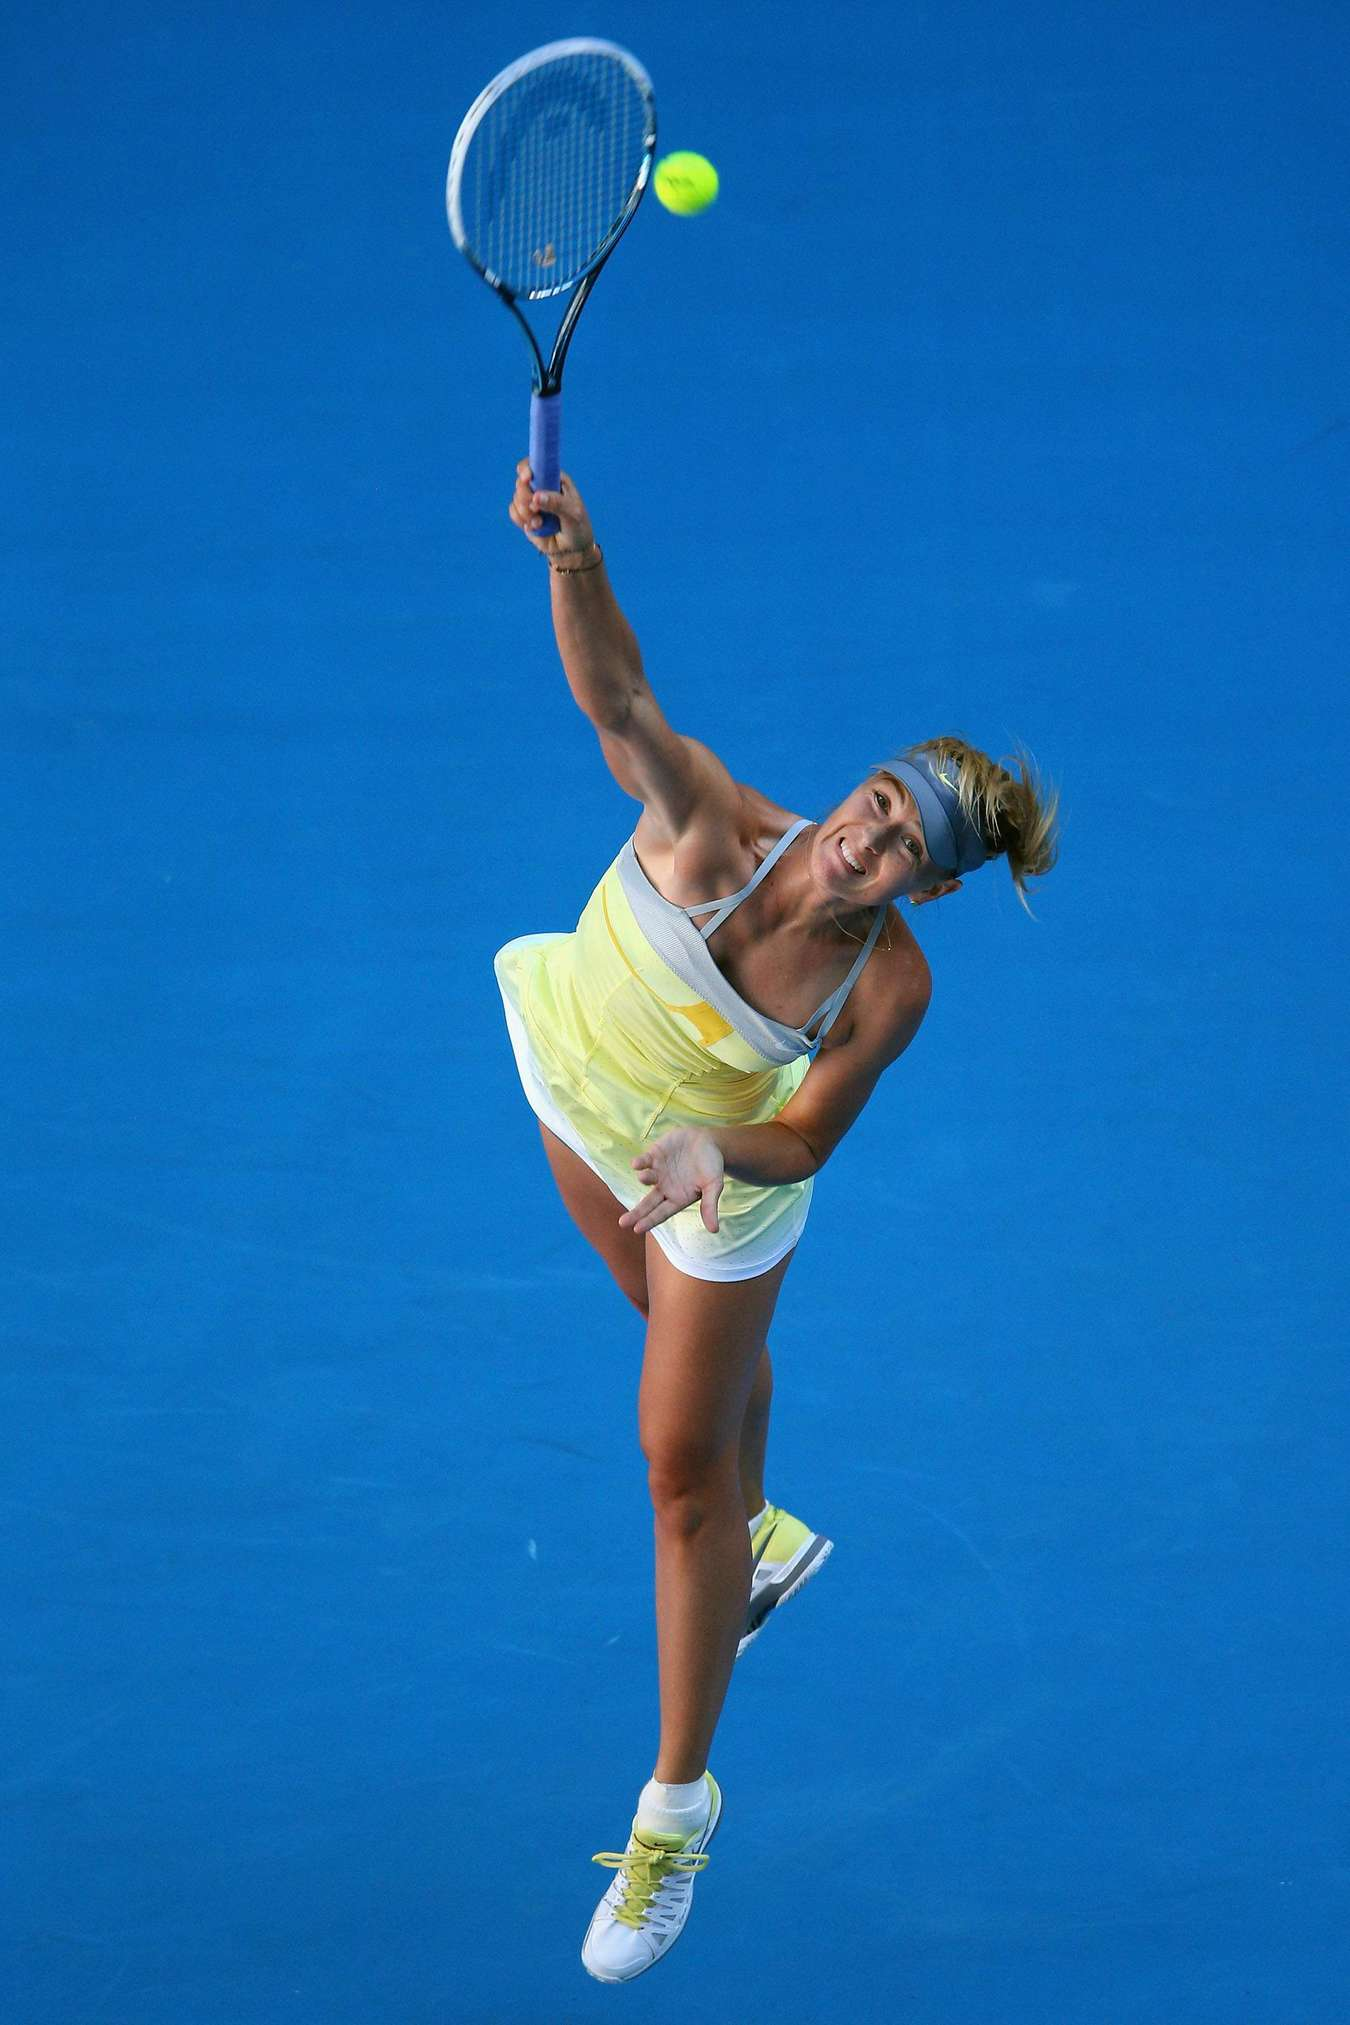 Maria Sharapova Ousts Venus Williams At 2013 Australian ... |Maria Sharapova 2013 Australian Open